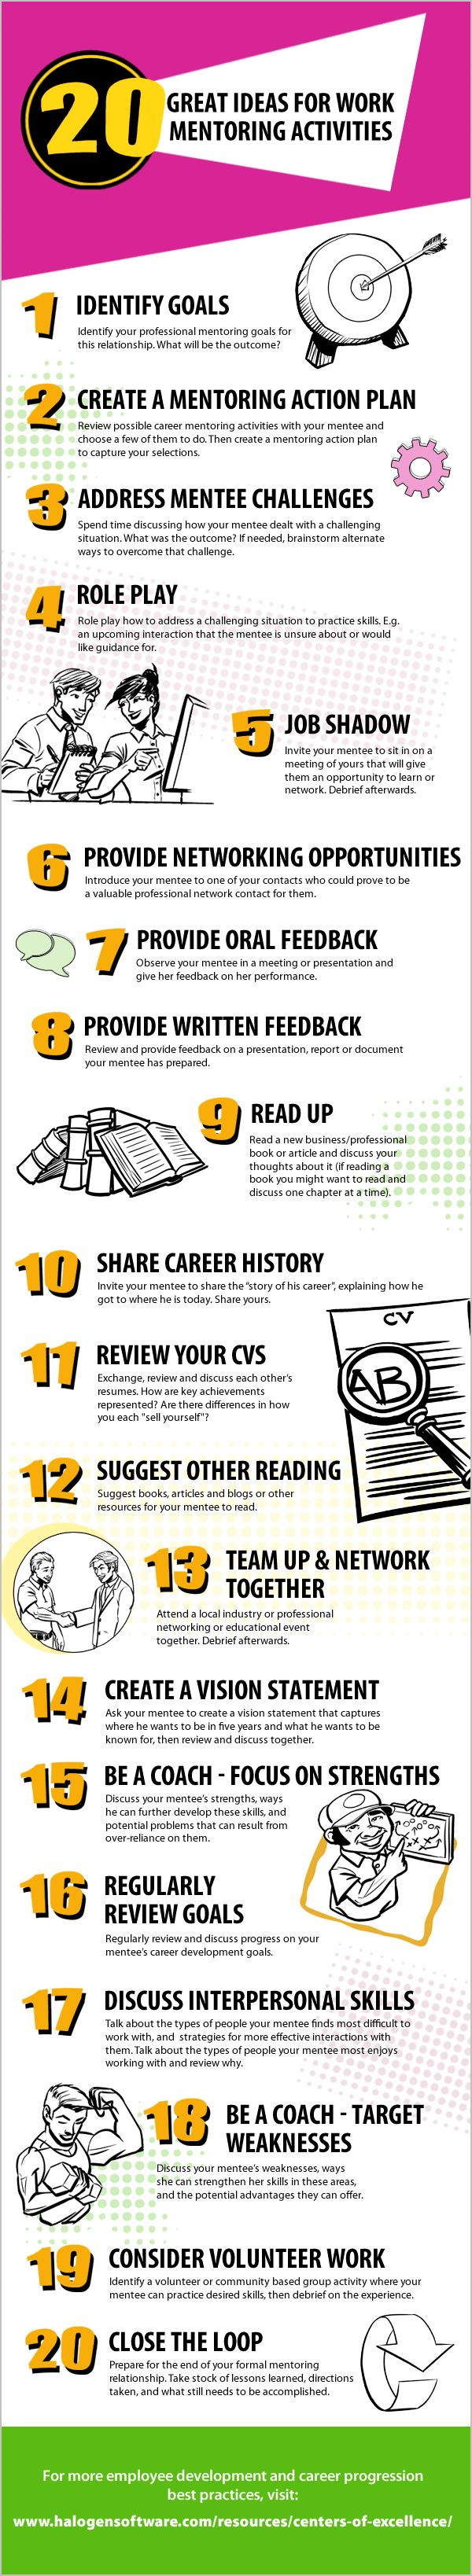 17 best images about infographics youth ministry a list of training and mentoring activities to help mentees achieve learning and career development goals some of these would be great to adapt for high